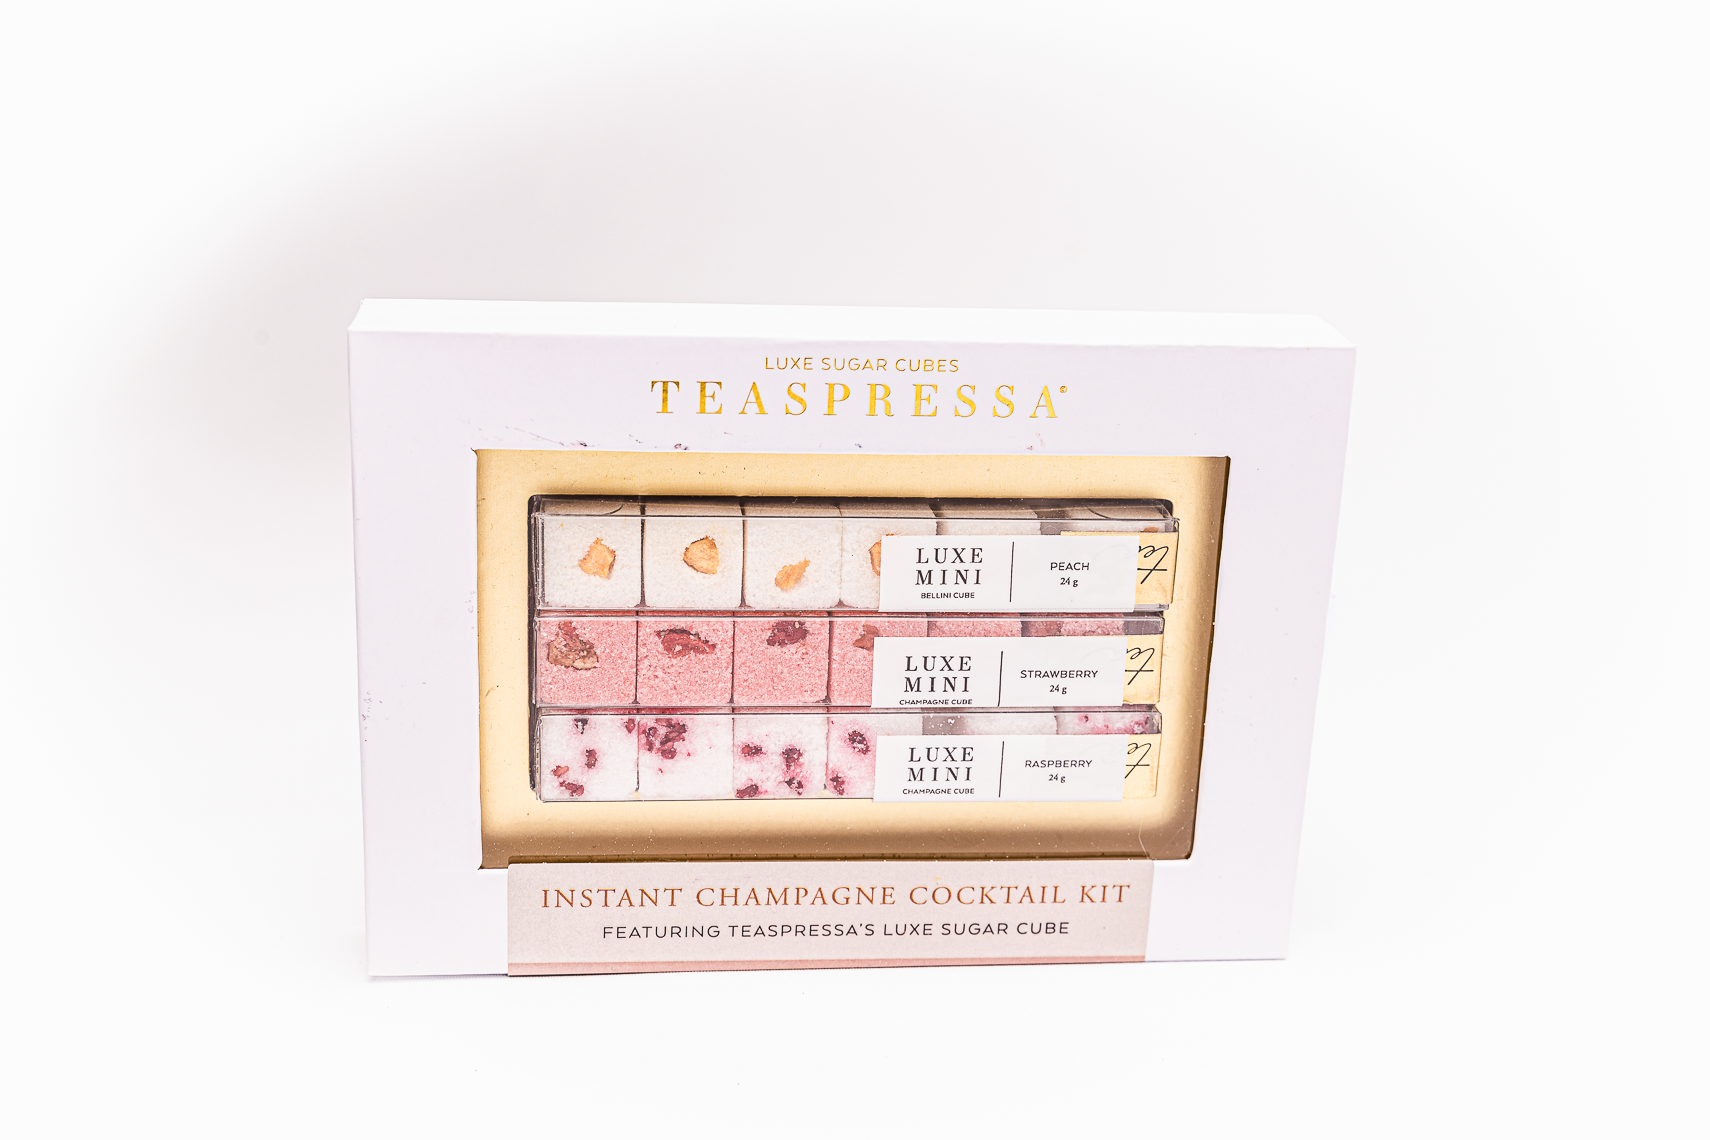 Teaspressa Champagne Cocktail Kit MAIN